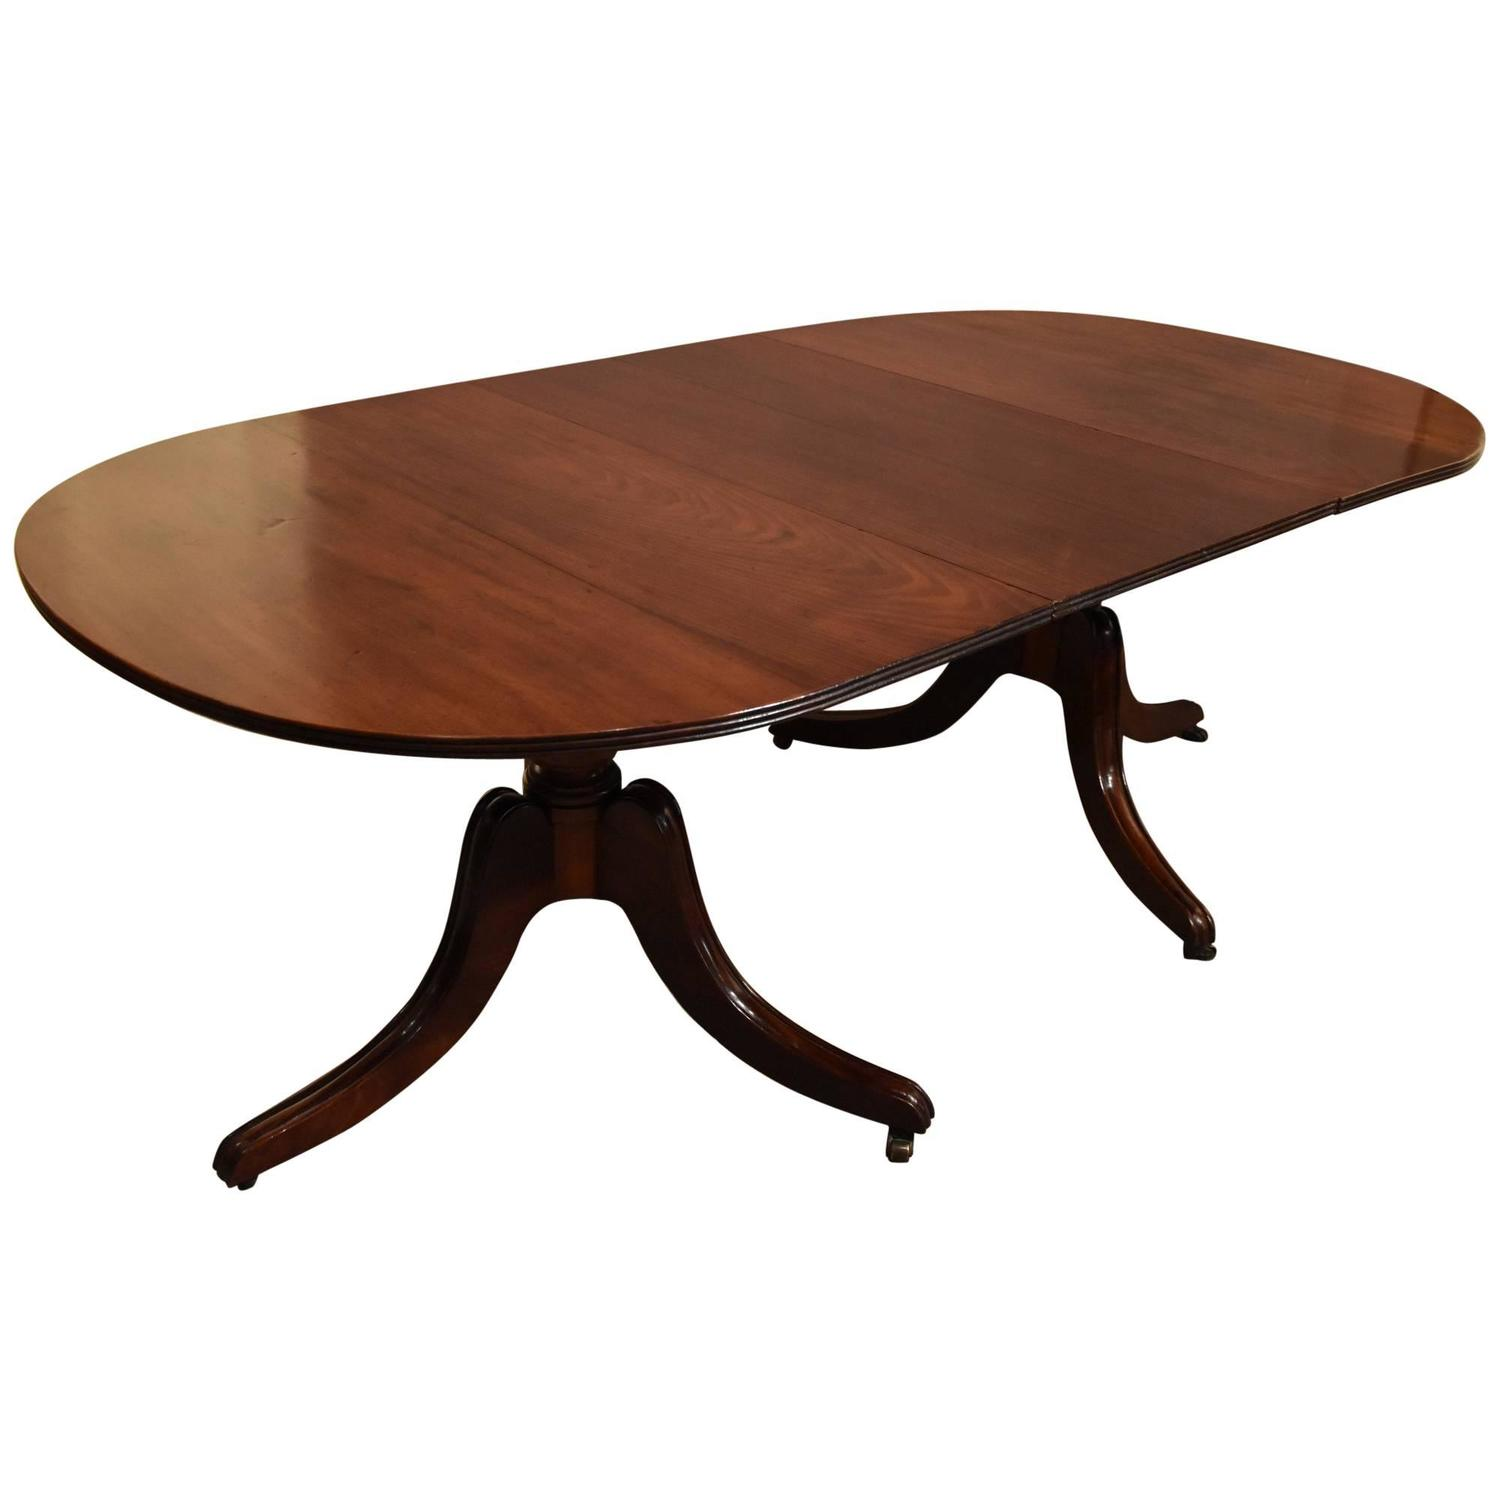 Elegant twin pillar dining table at 1stdibs for Pillar dining table